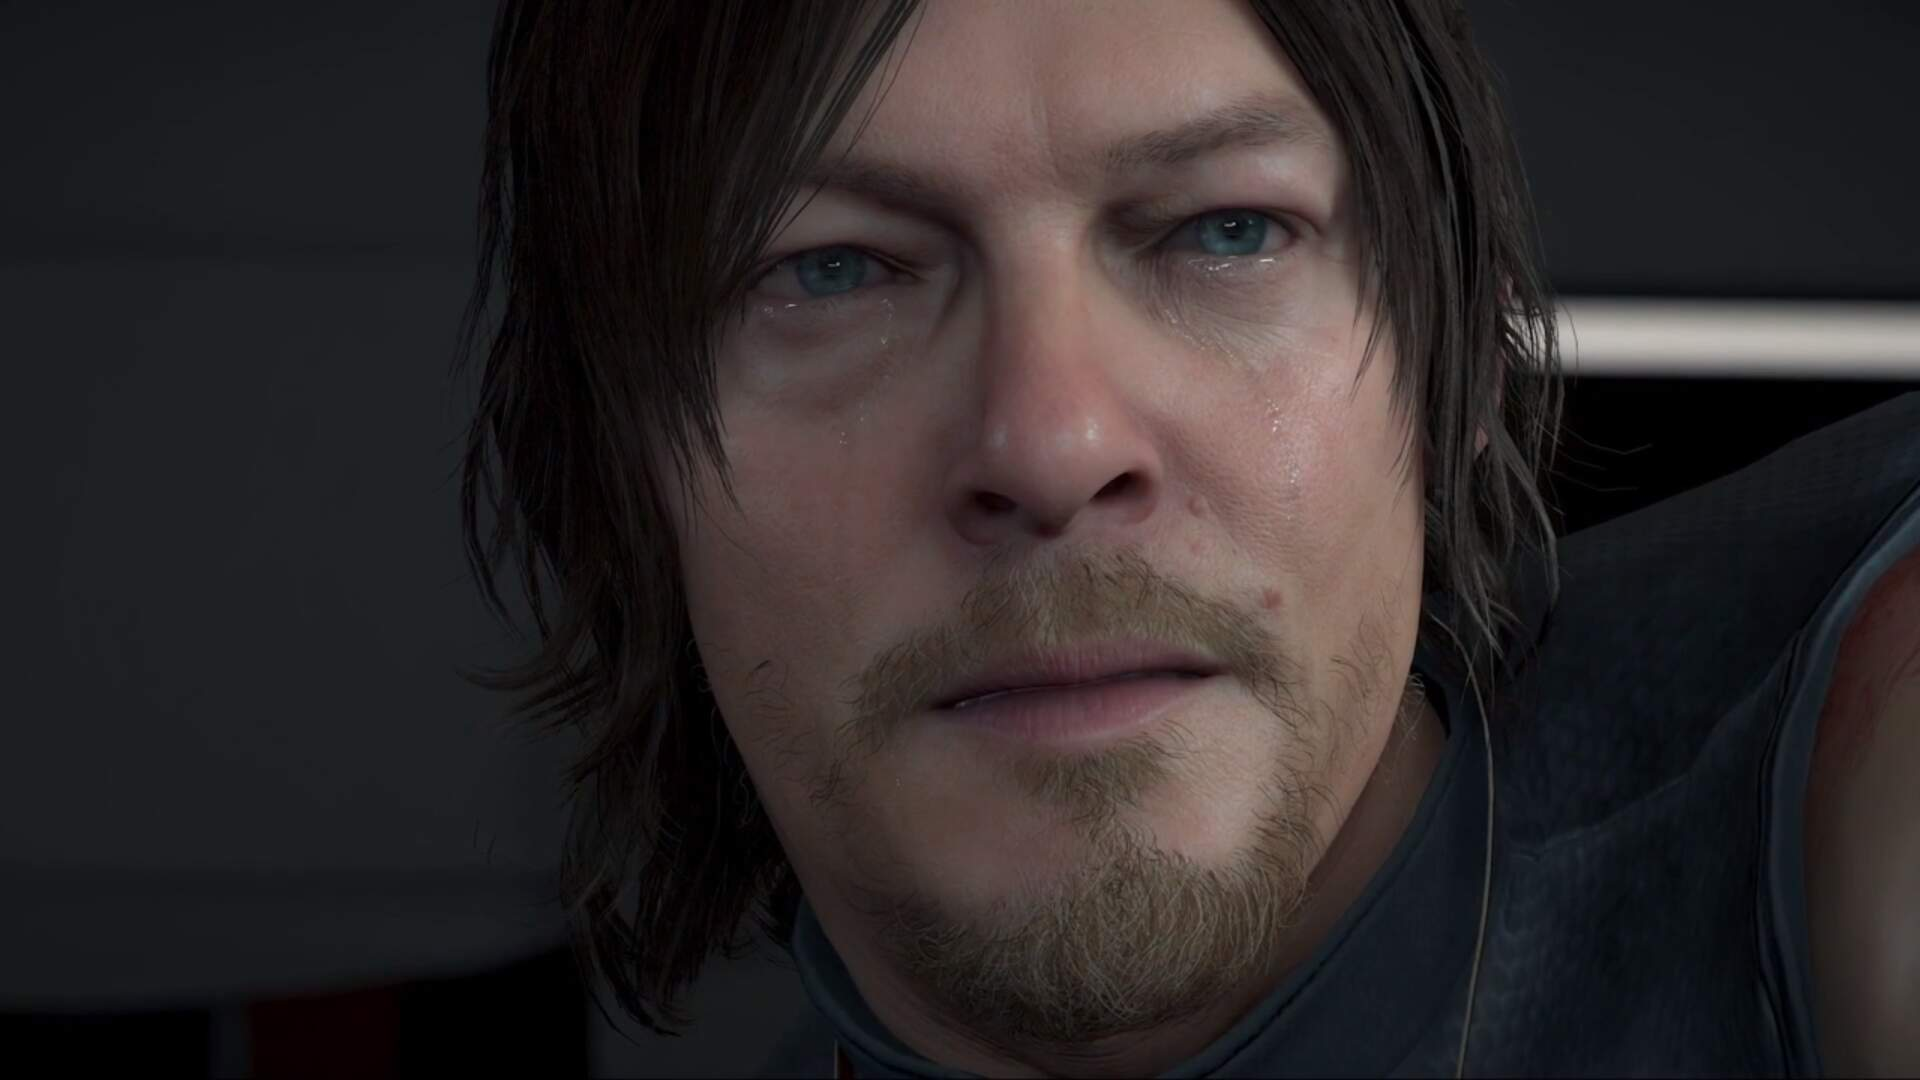 The Death Stranding Trailer Analysis: Our Biggest Takeaways